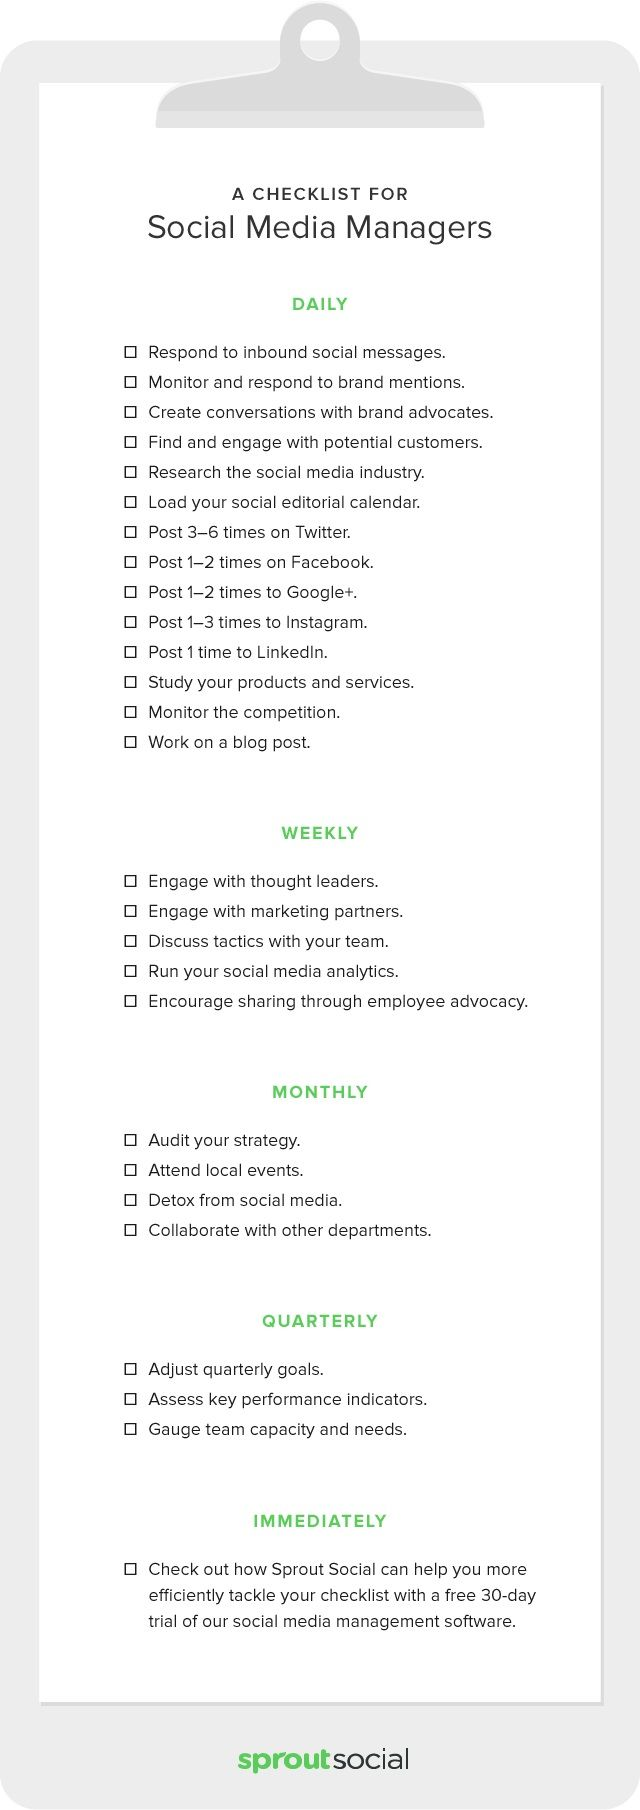 Social media gives your business 24/7 marketing----- A complete checklist for social media managers